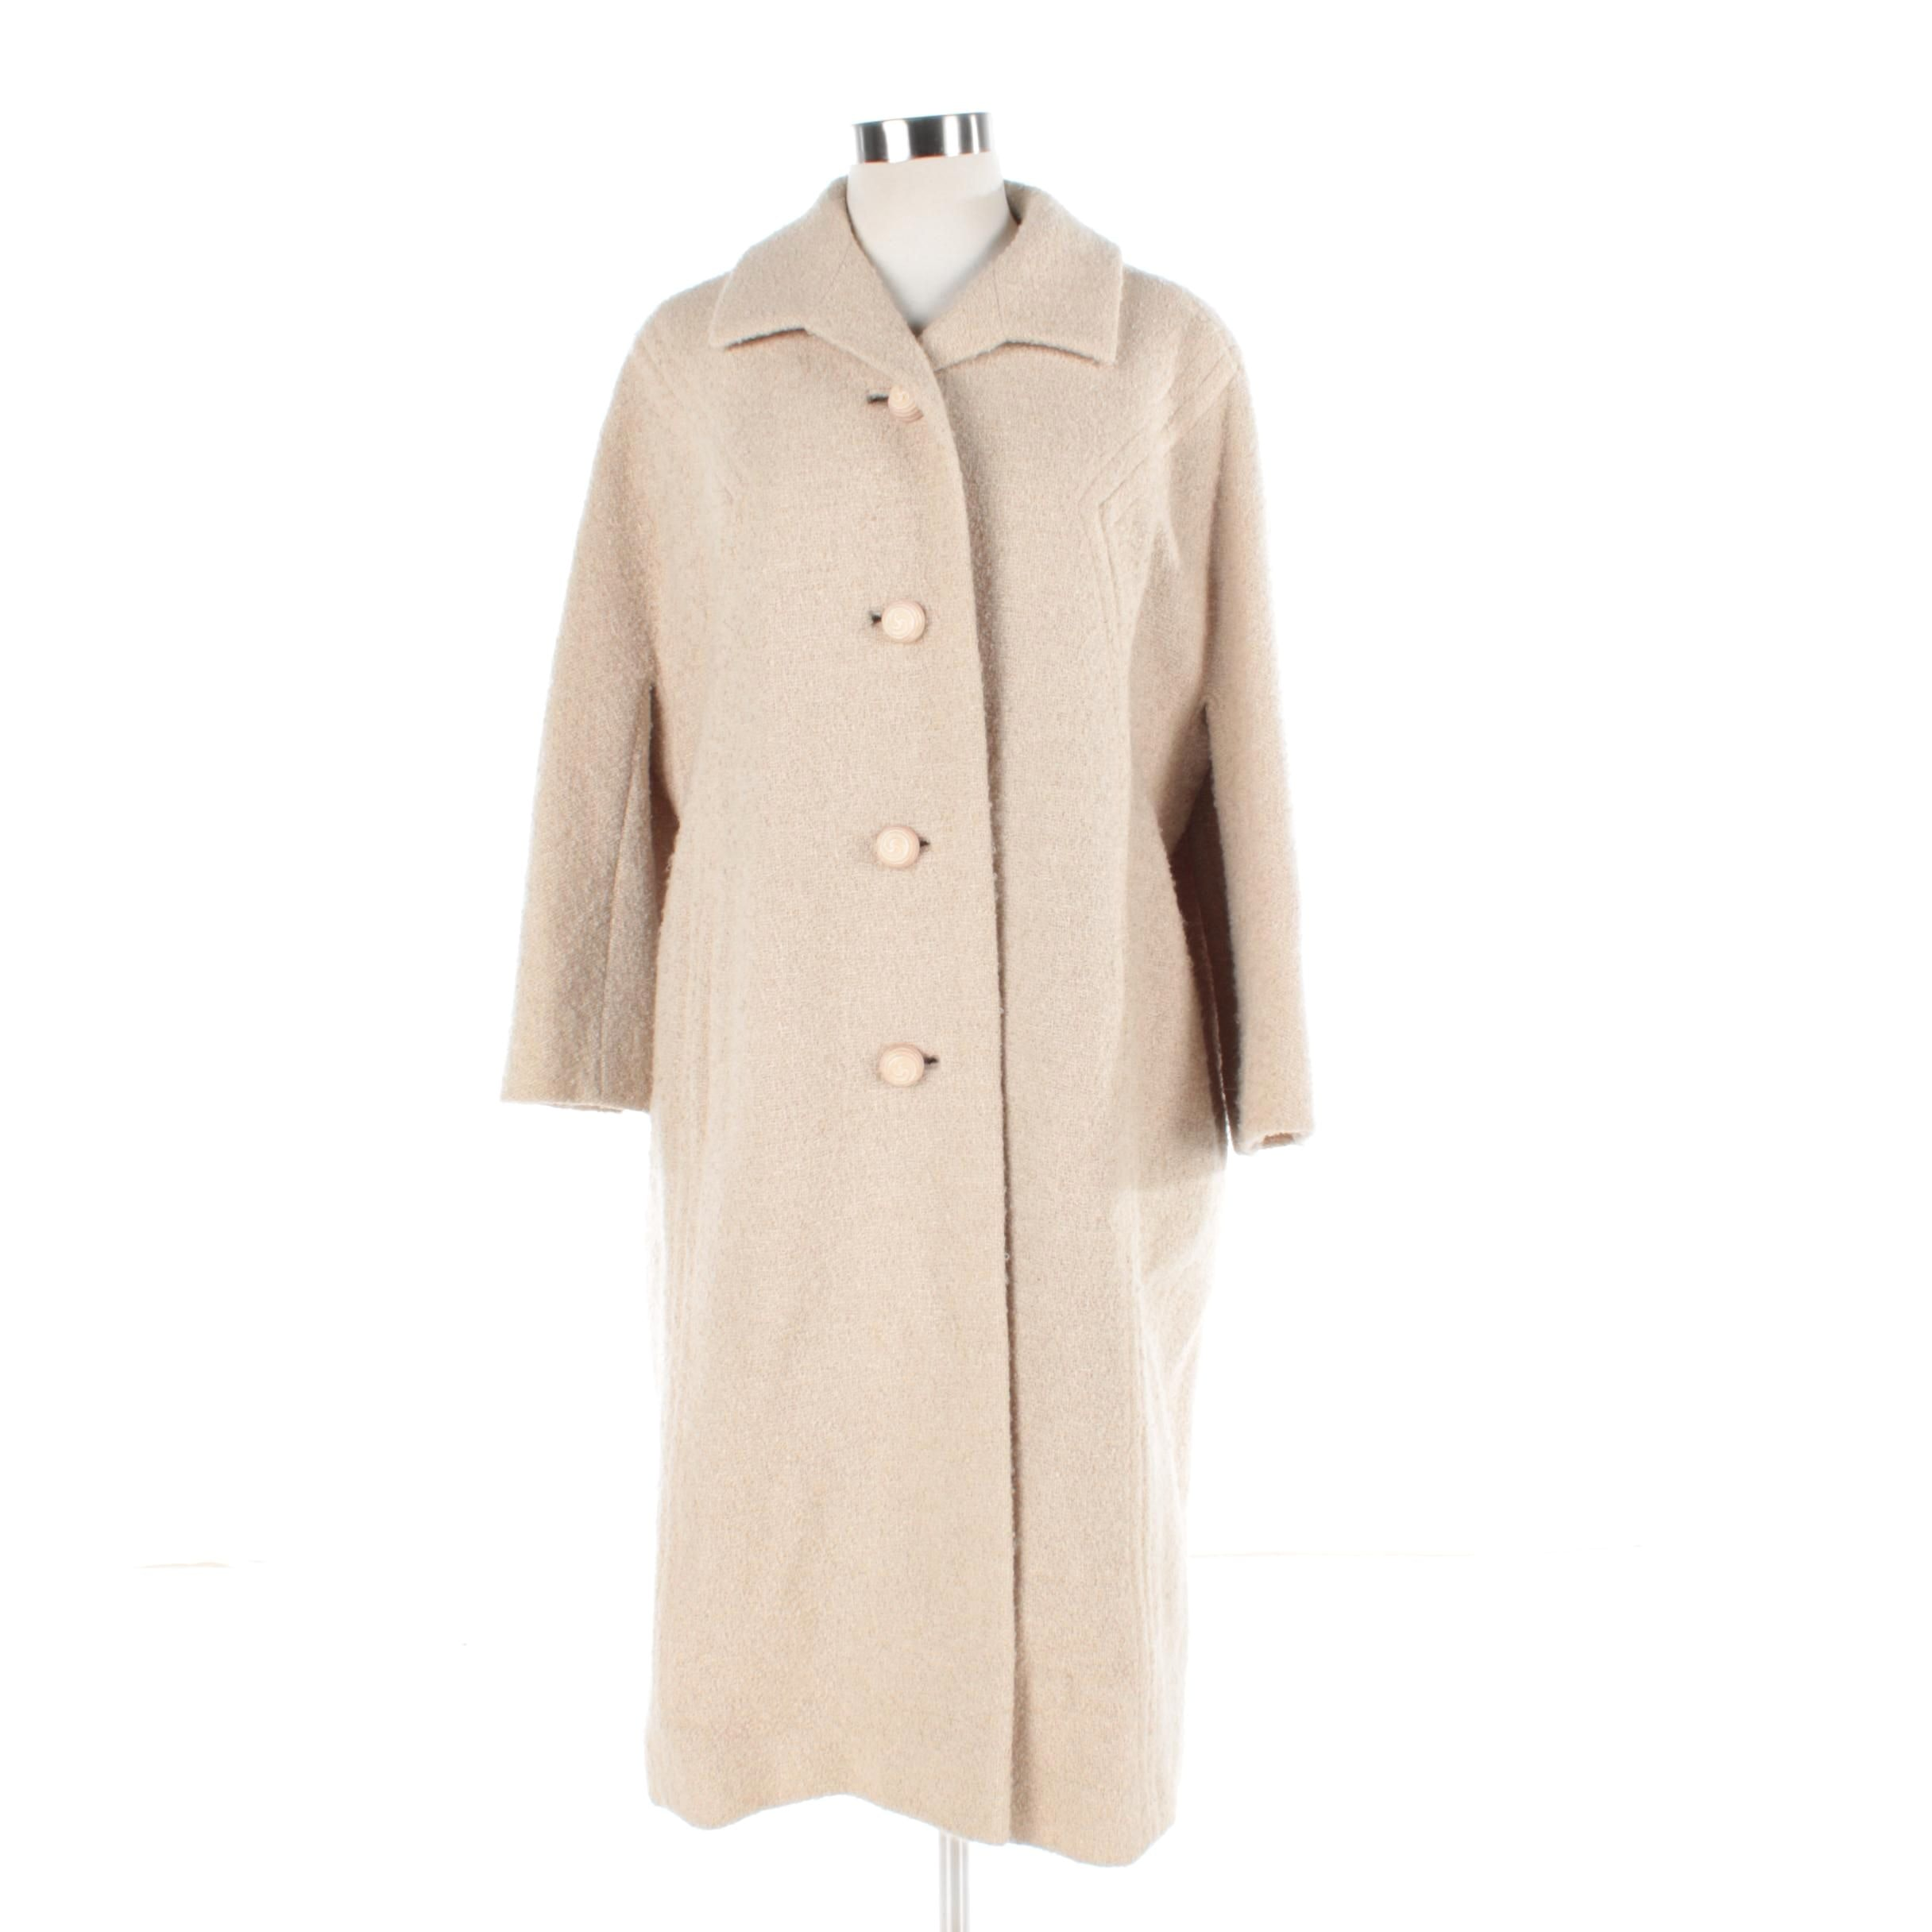 Women's Vintage Tan Wool Coat